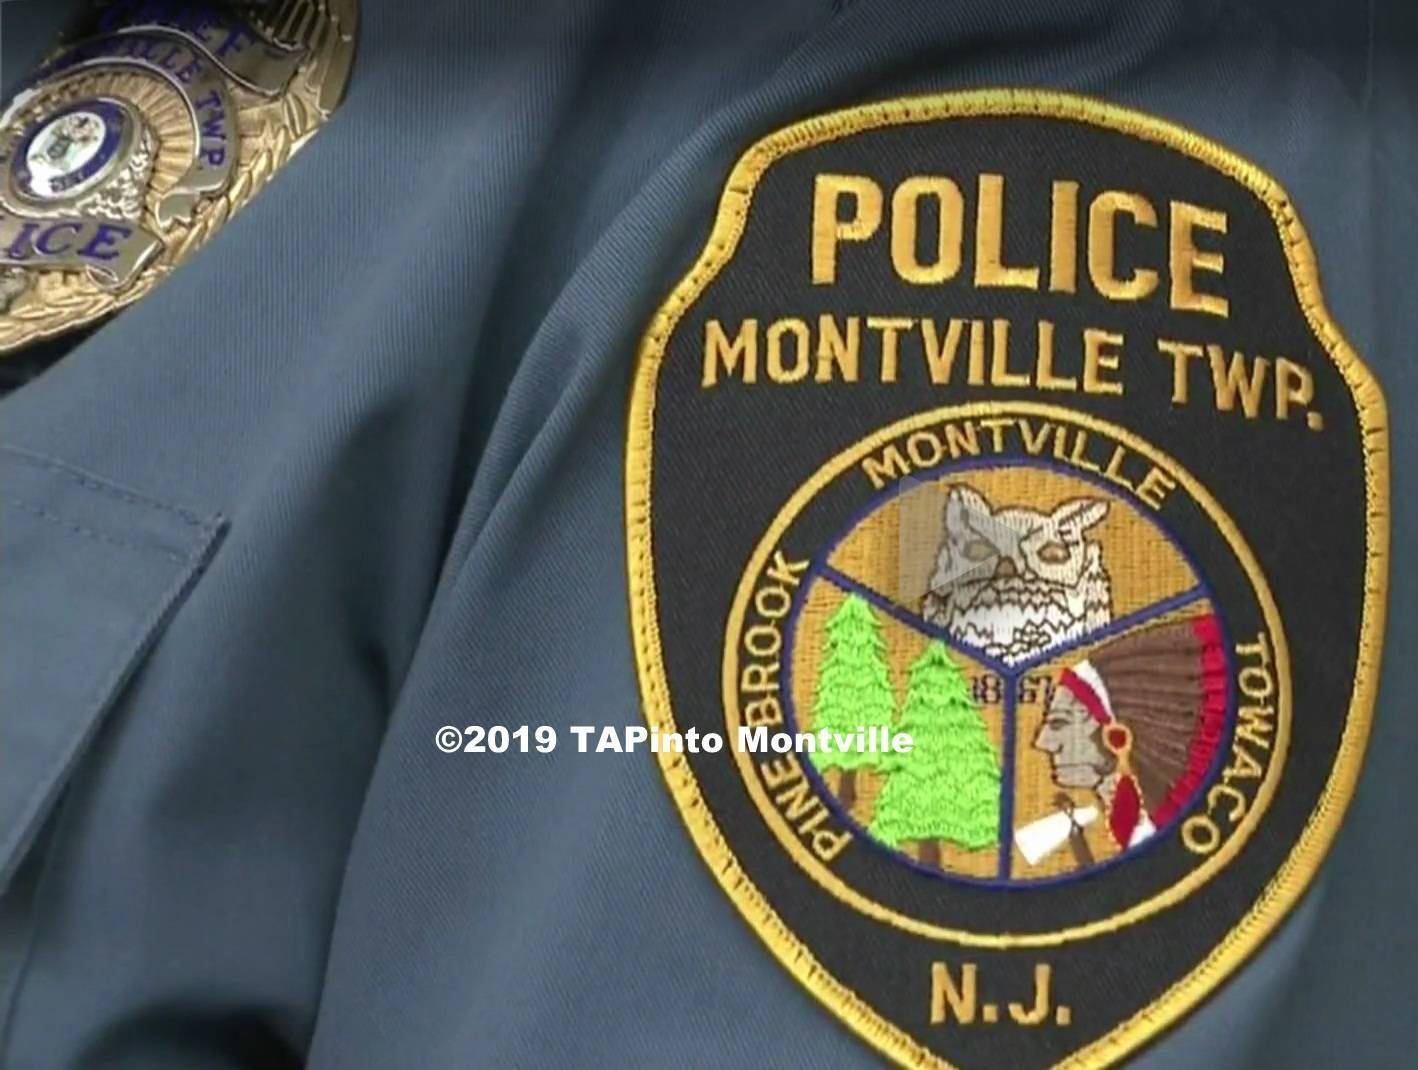 a Police patch photo ©2019 TAPinto Montville.jpg